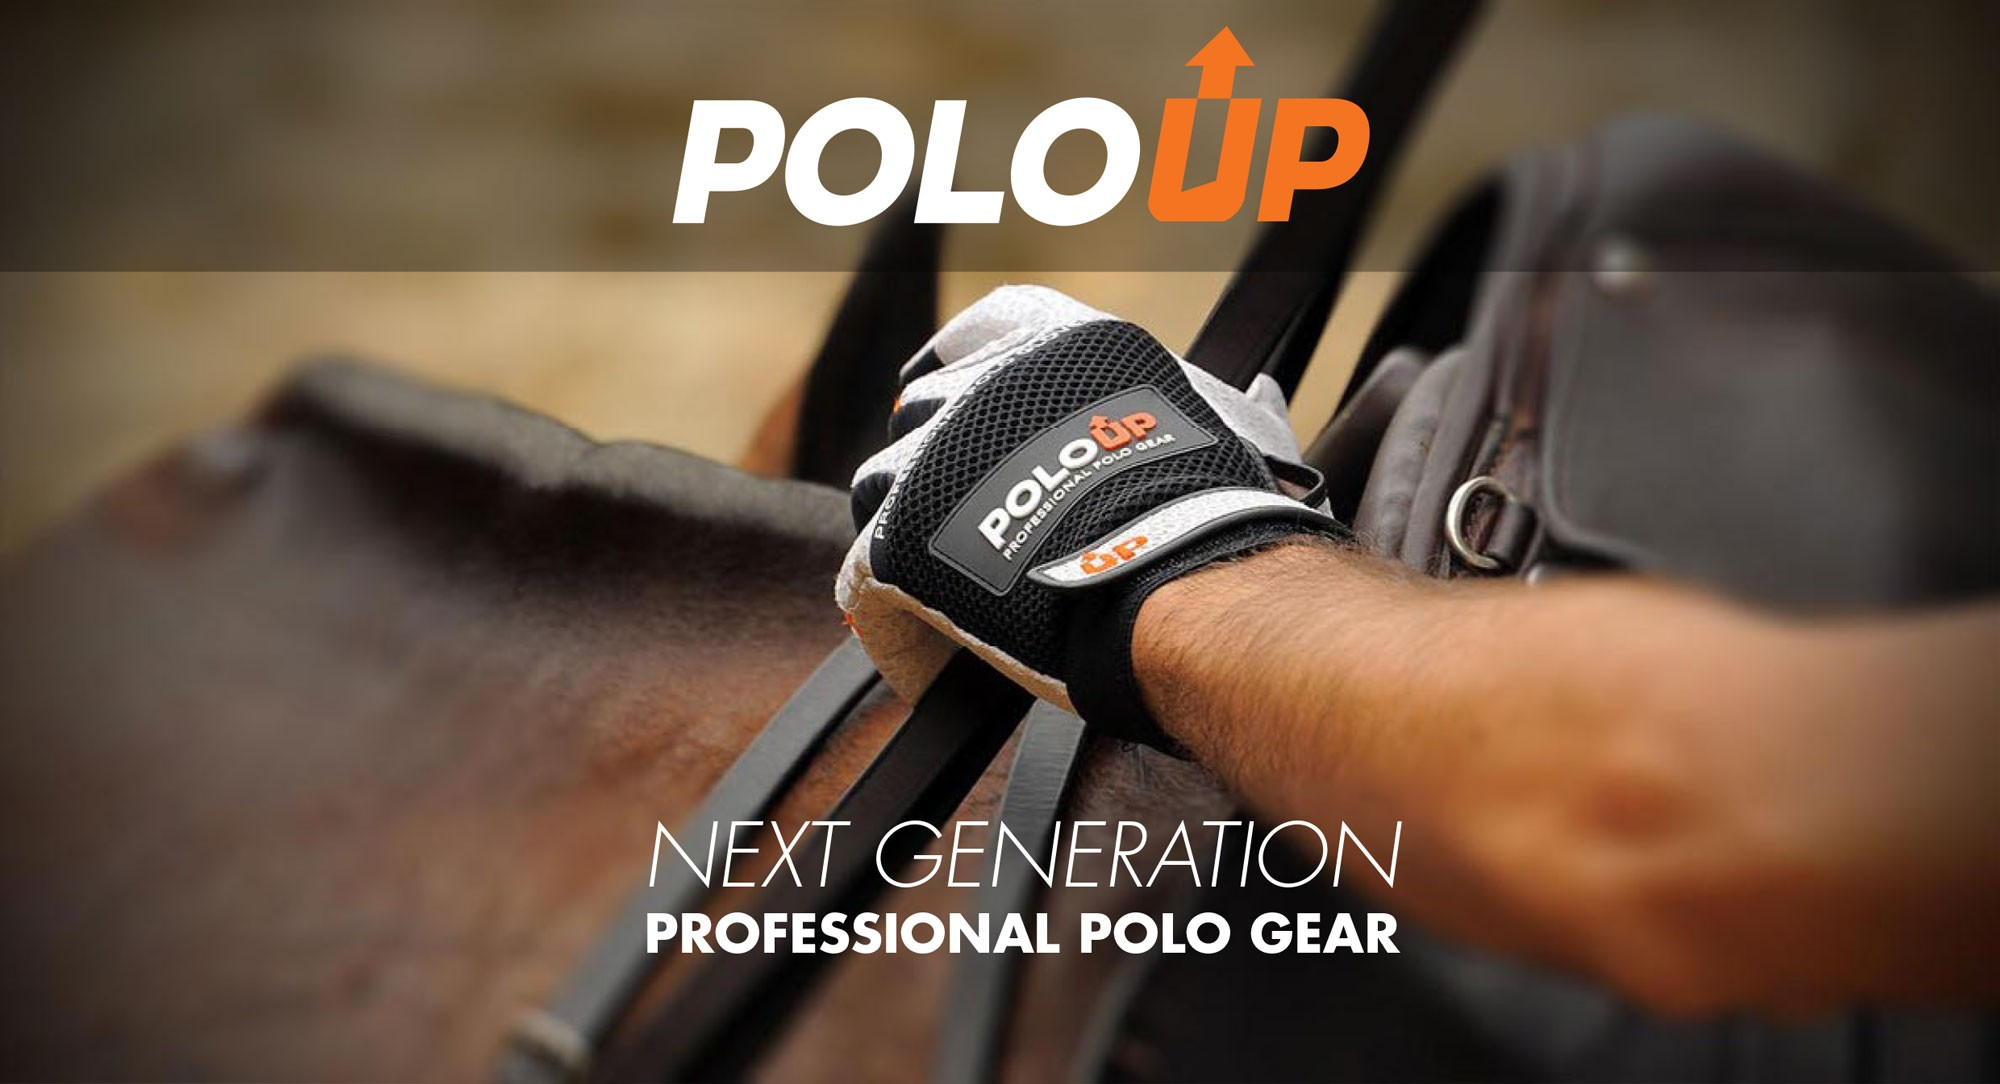 Professional polo gear